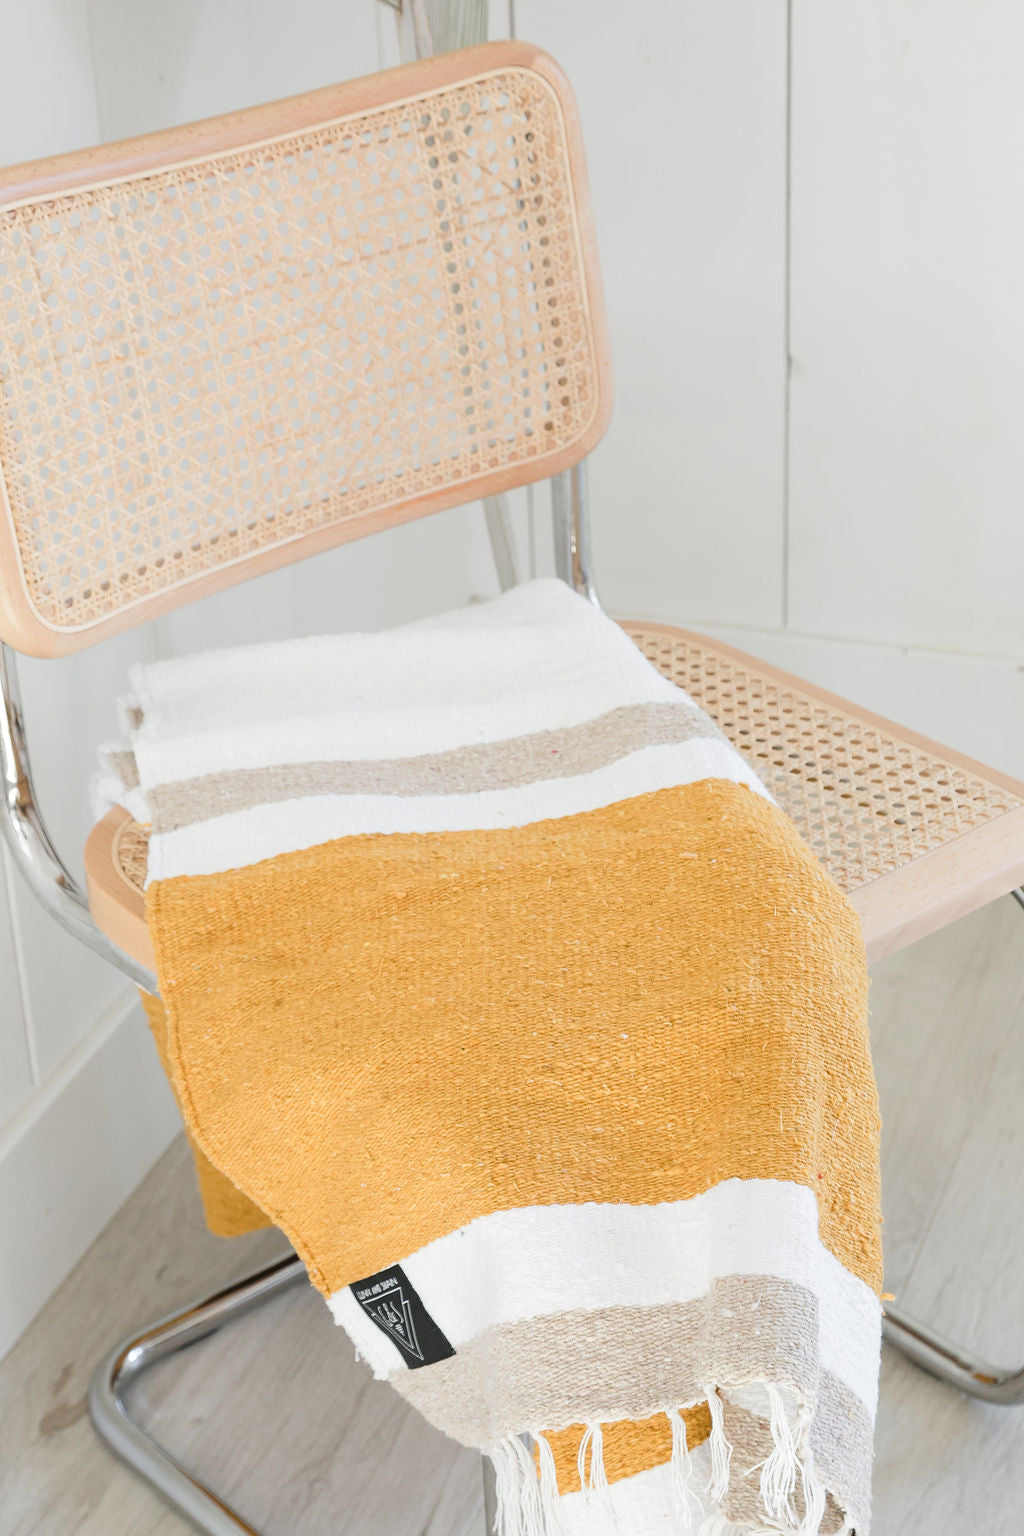 The Marseille: Mustard Yellow, Tan & White Striped Mexican Blanket